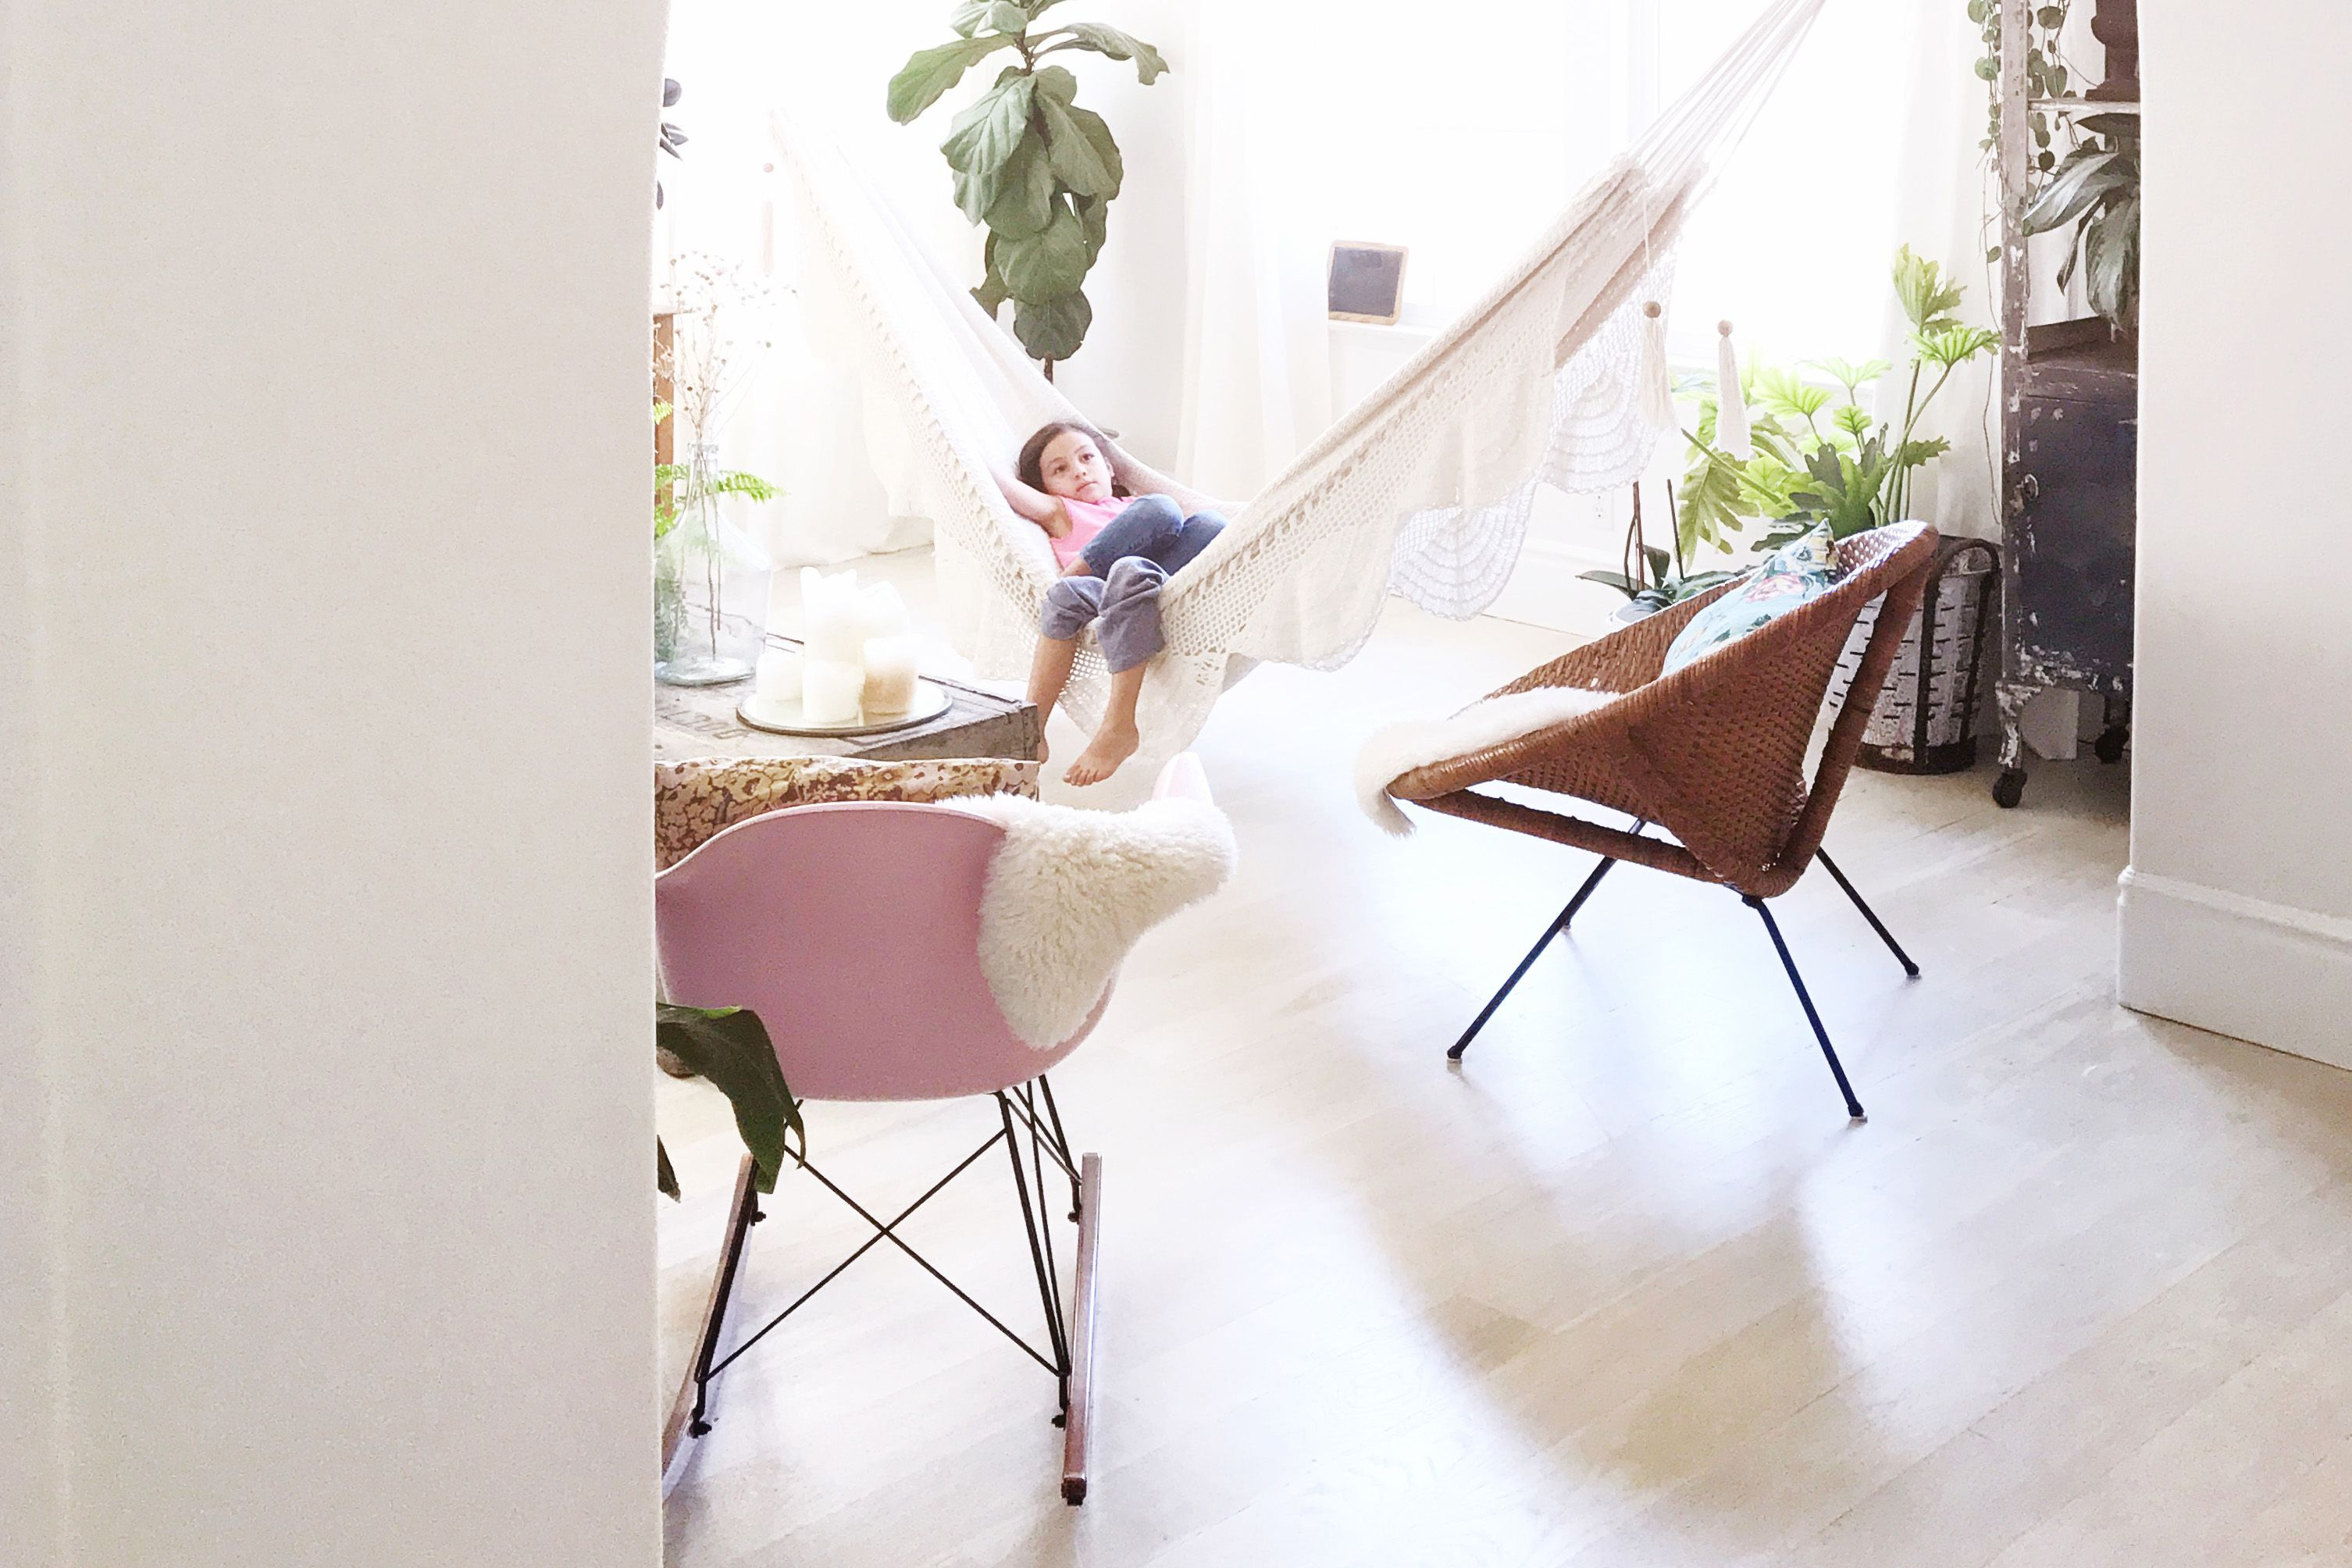 20 Ideas For Decorating With Indoor Hammocks